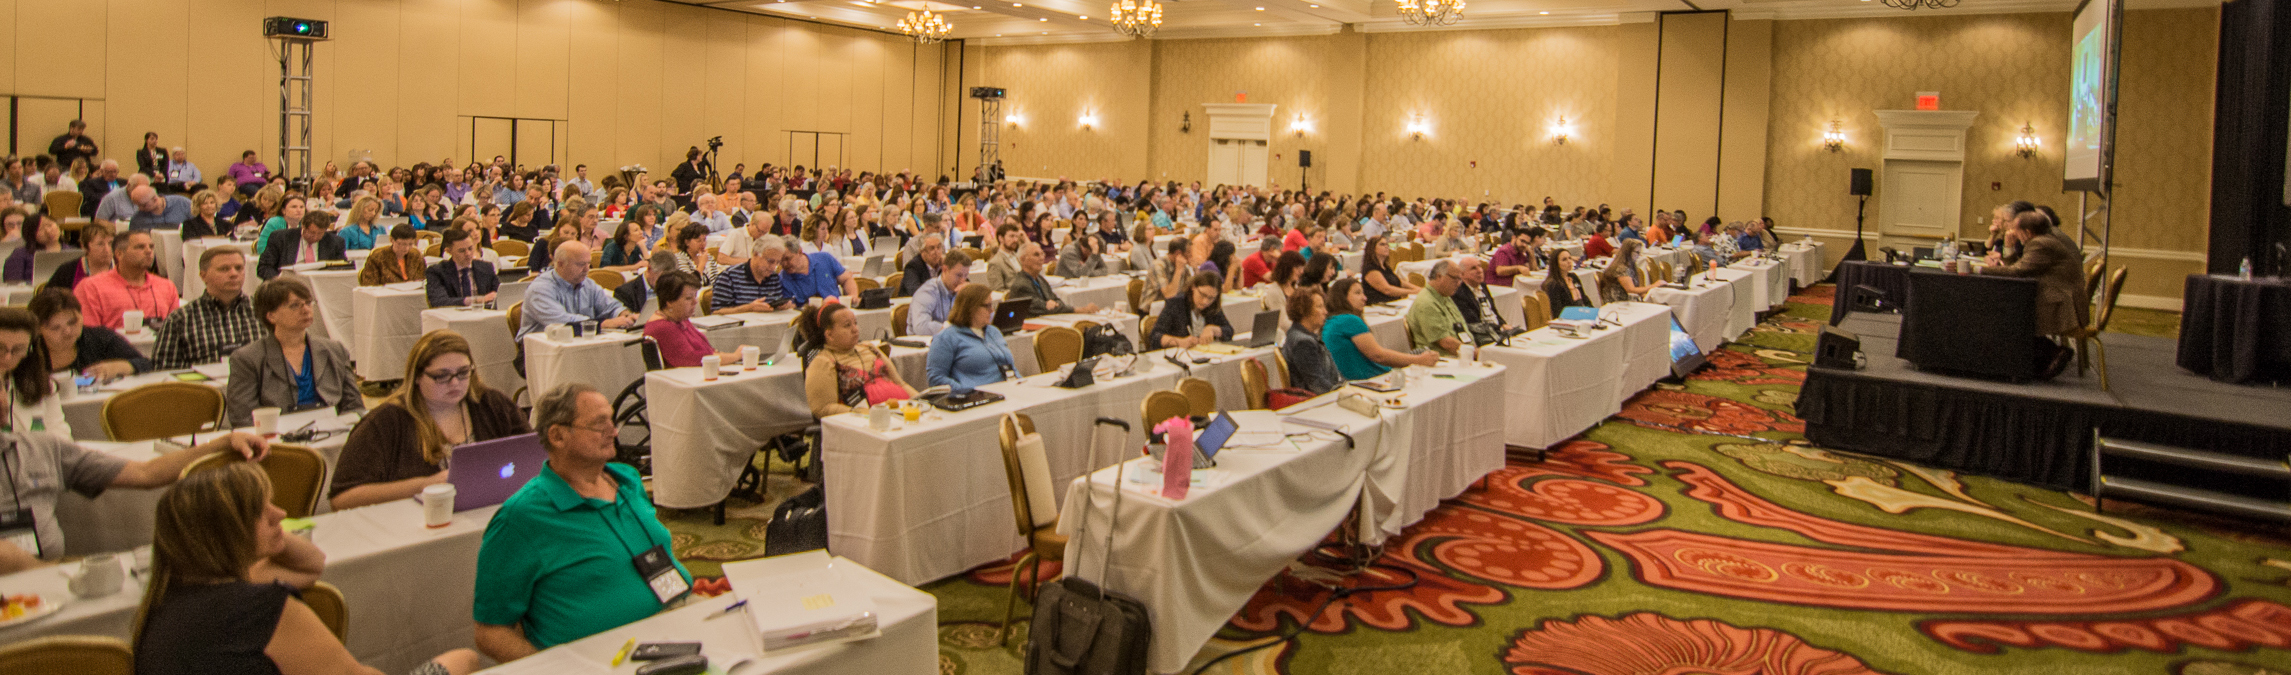 Excellence In Special Education Summit >> National Conference On Special Needs Planning And Special Needs Trusts